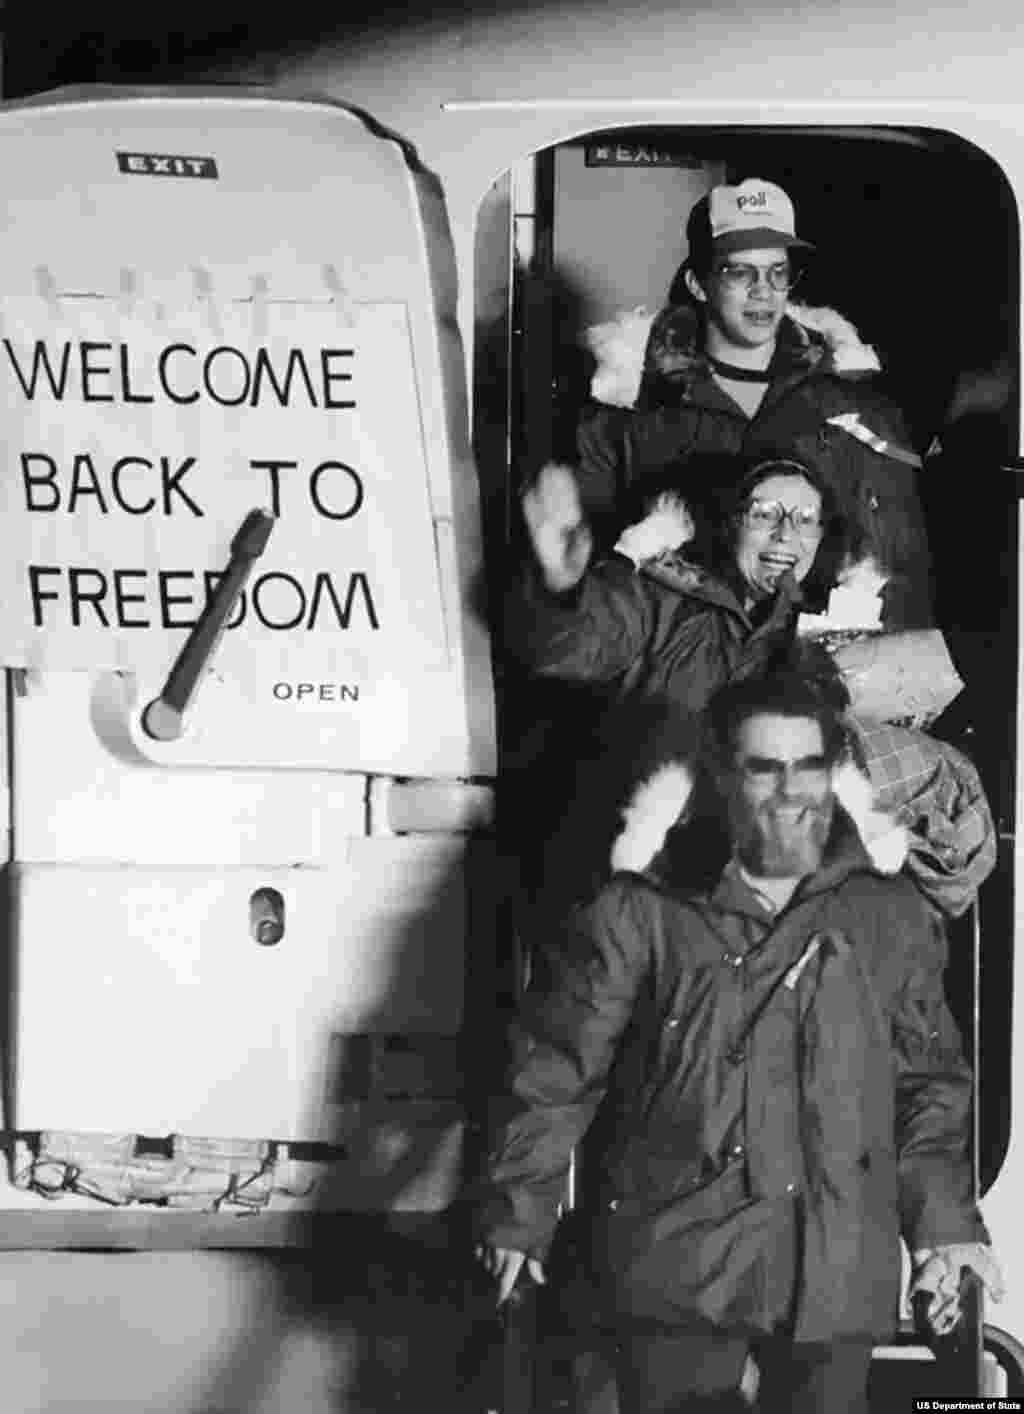 Finally freed after a tortuous negotiation process mediated by Algeria, the 52 remaining hostages arrive in Wiesbaden, West Germany, on January 20, 1981. The captives were released just minutes after Ronald Reagan was sworn in as U.S. president. Fourteen hostages had been released over the previous year, including one for medical reasons.